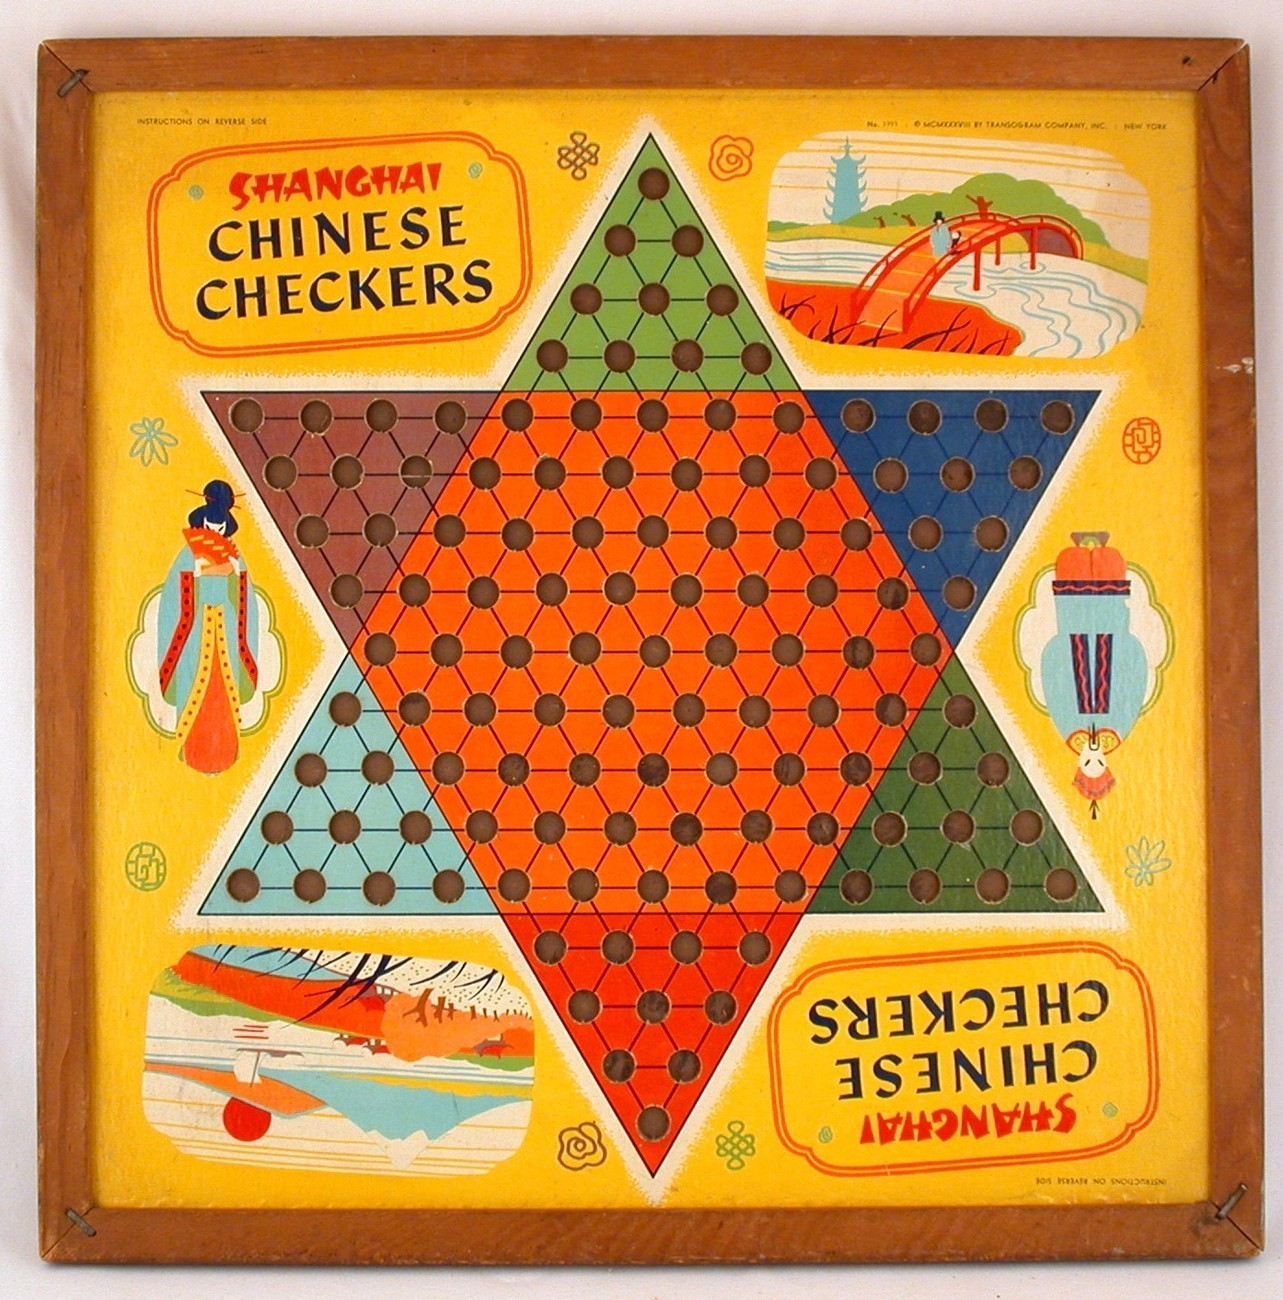 Shanghai Chinese Checkers 2-Sided Board Game Halsam